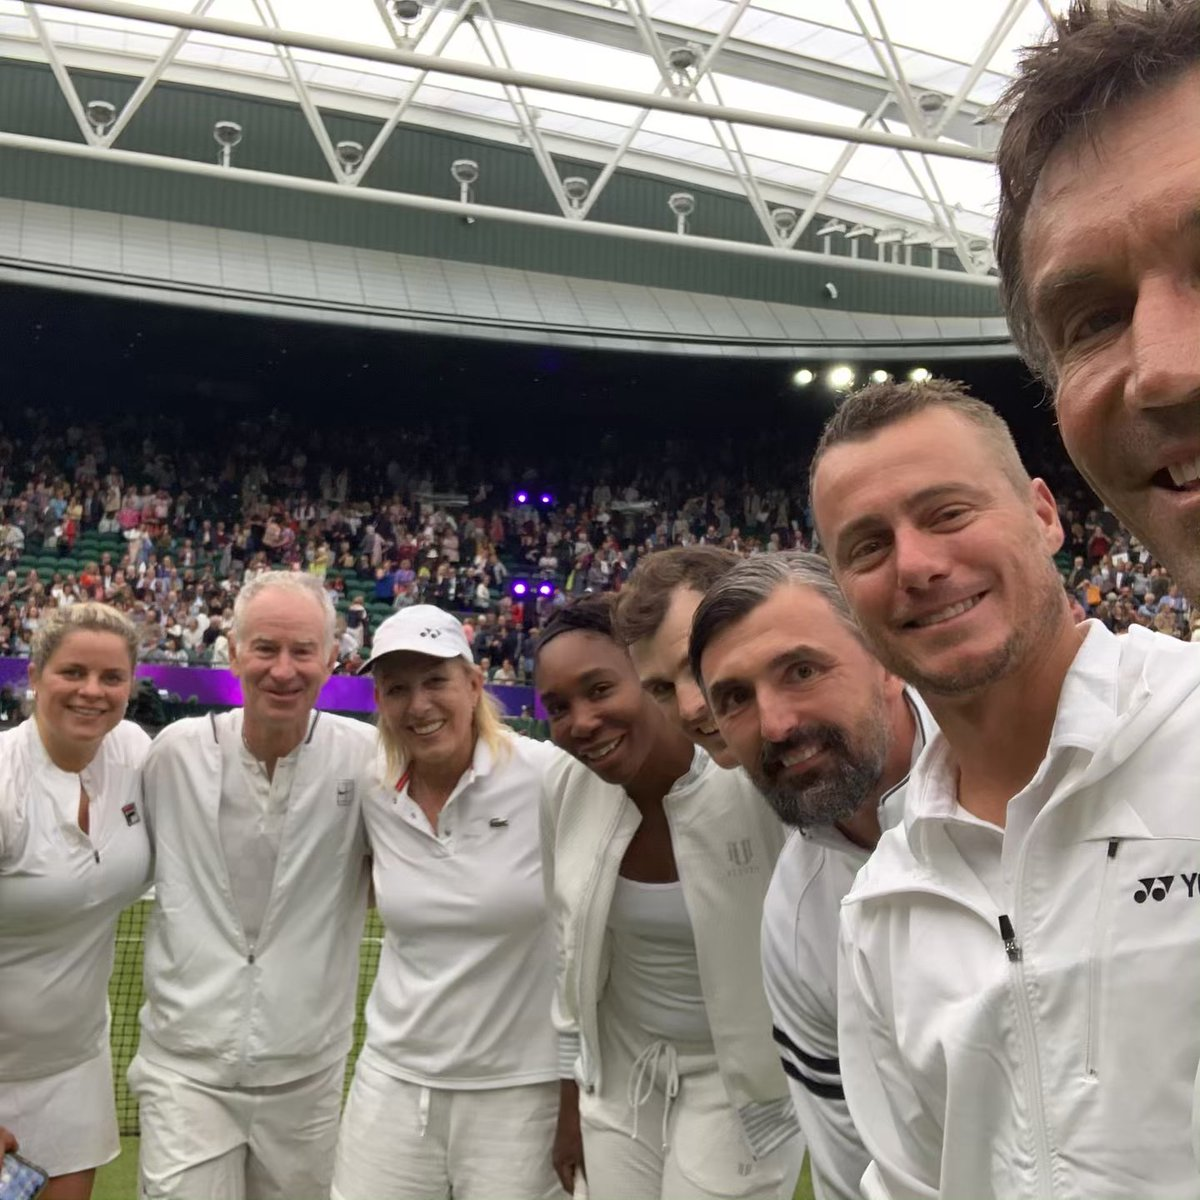 What a line up of super stars at @Wimbledon for the No.1 Court Celebration! Great fun and lots of £££ raised for charity. #Wimbledon #Tennis #RoofForAll